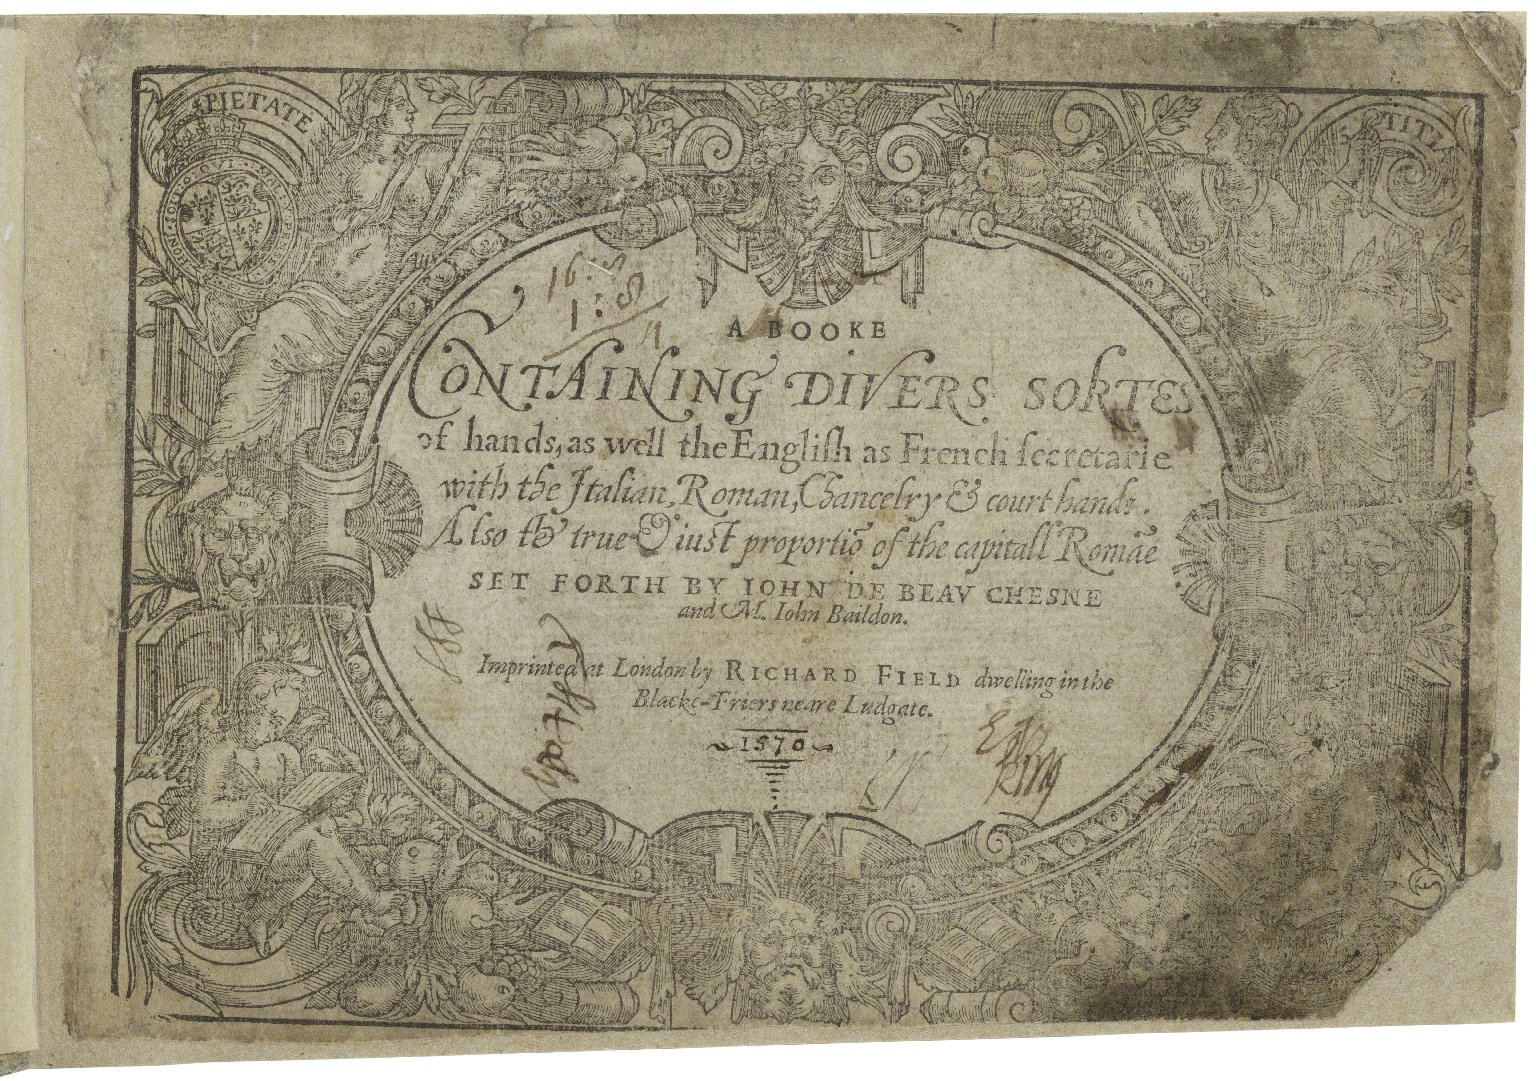 A booke containing diuers sortes of hands, as well the English as French secretarie with the Italian, Roman, chancelry & court hands. Also the true & iust proportio[n] of the capitall Roma[n]e set forth by Iohn de Beau Chesne and M. Iohn Baildon.